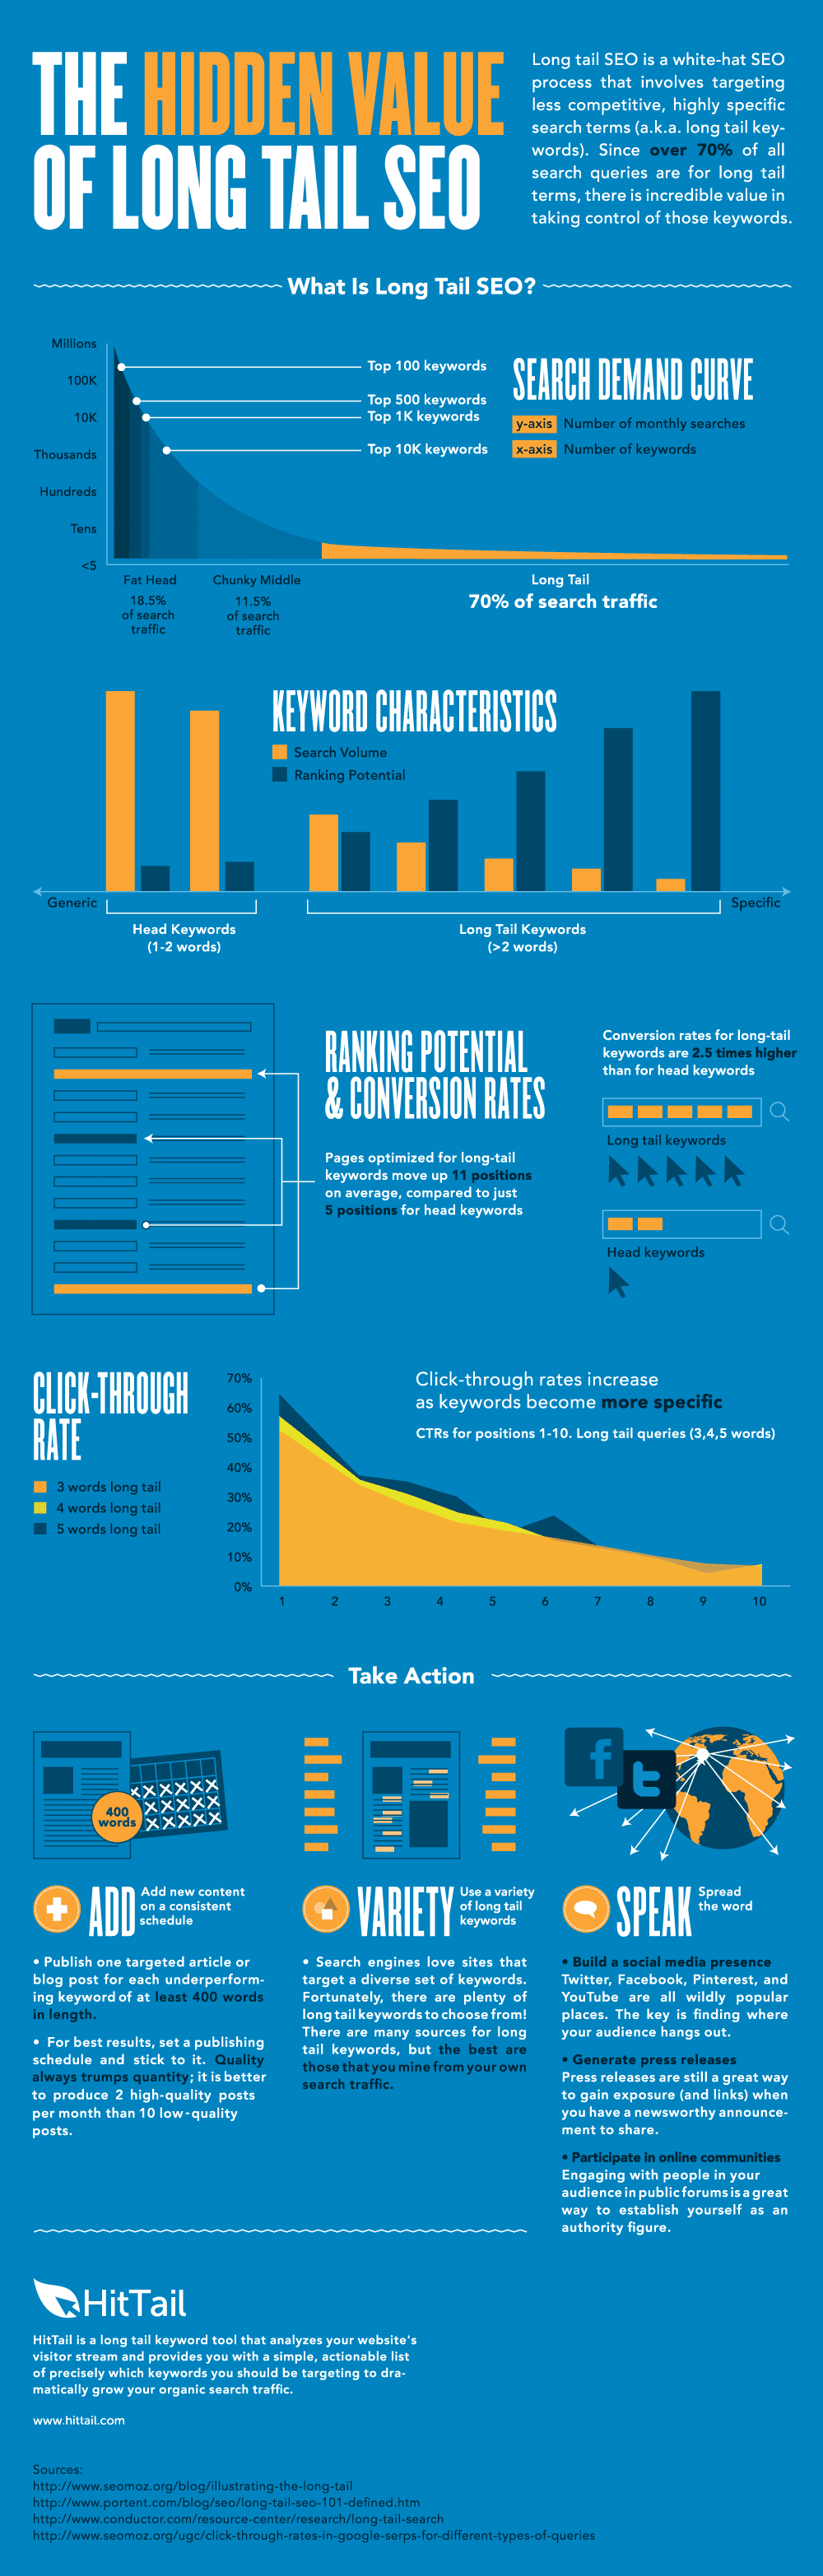 How To Successfully Implement Long Tail SEO [Infographic]